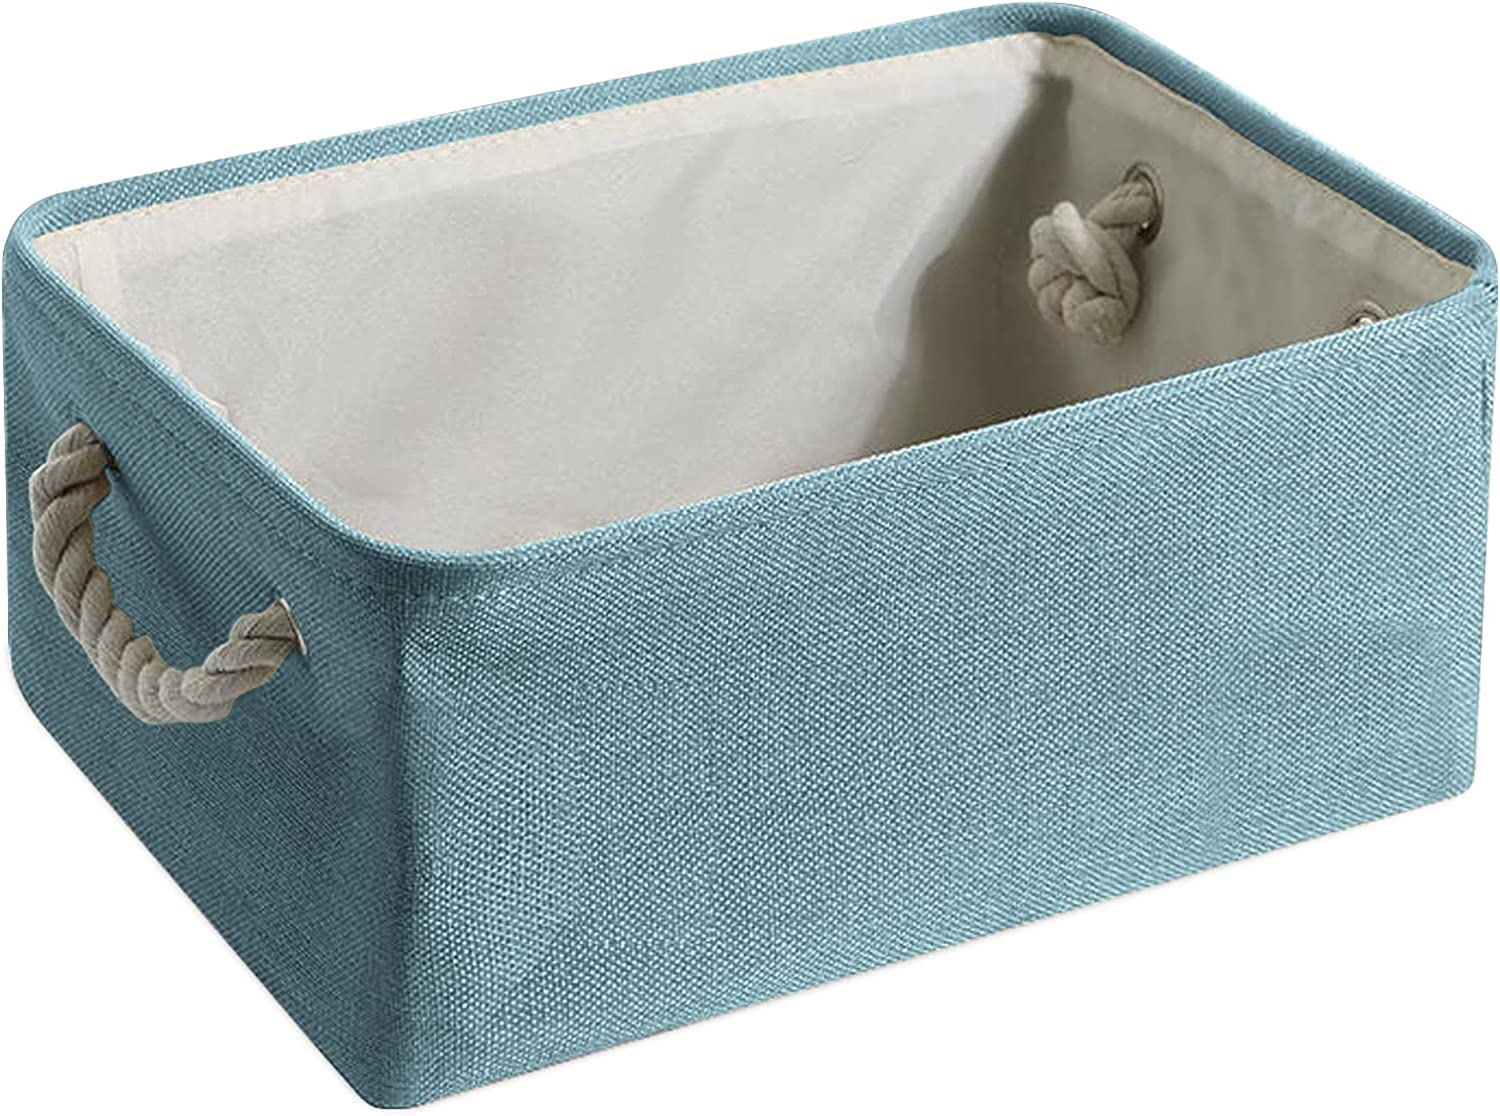 GOYAVCE Storage Basket Cubes 16.1 x 12.2 x 7.9 inches, Fabric Collapsible Storage Bins Organizer with Handles, Clothes Baskets Bin for Home Office Toys Kids Room Closet Shelves (Blue)